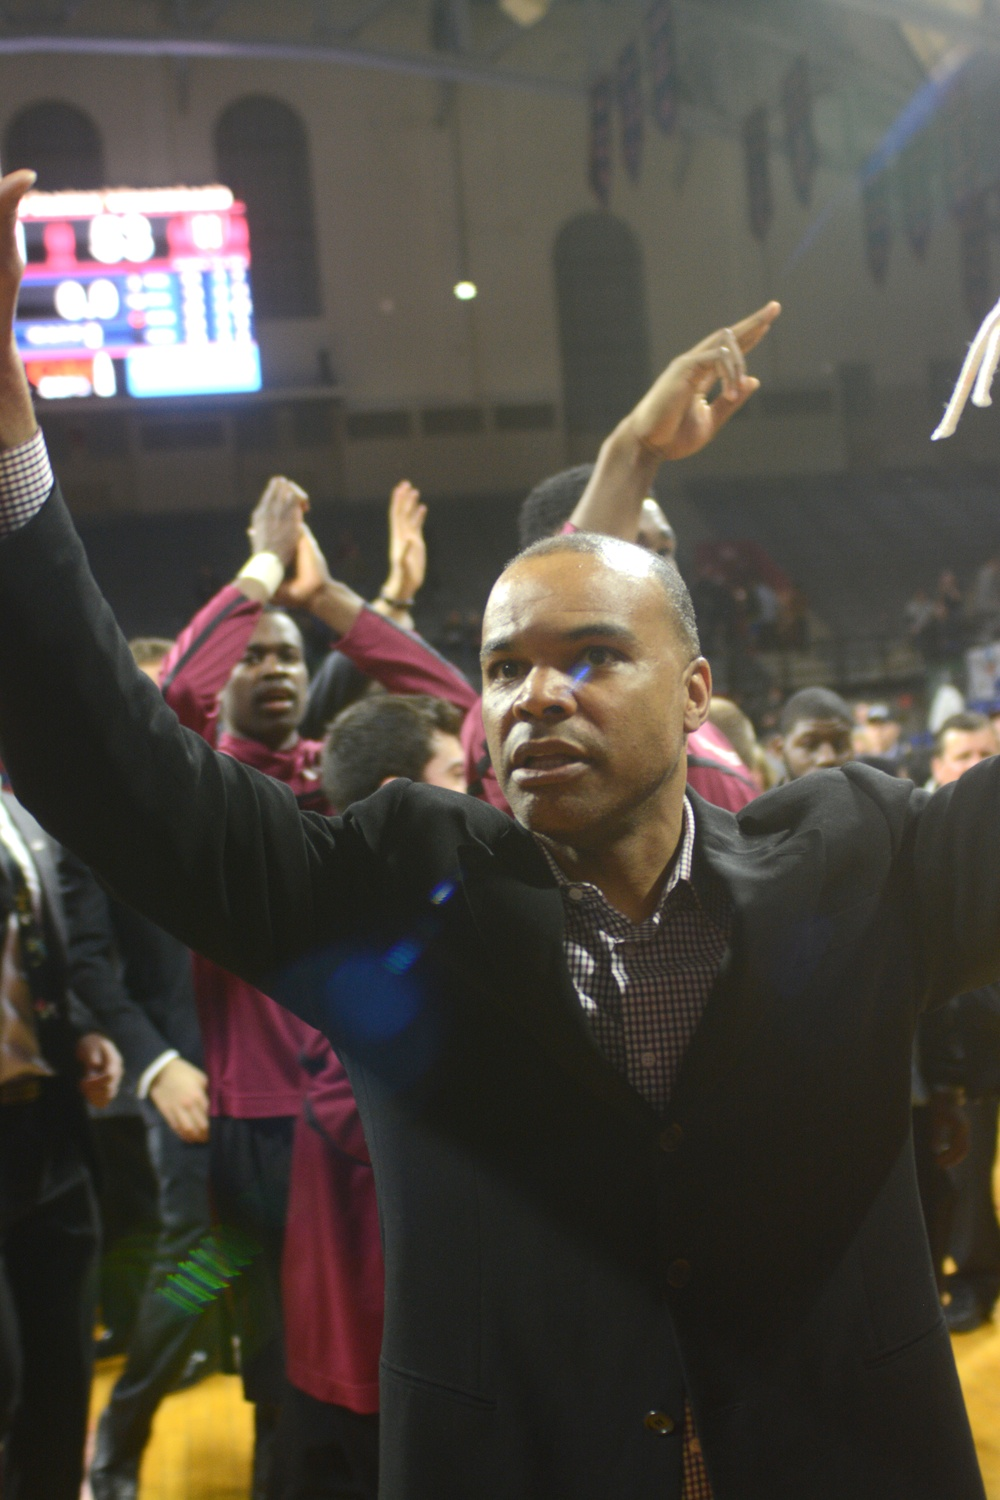 Harvard coach Tommy Amaker and his Crimson team earned their fourth-consecutive NCAA Tournament berth after beating Yale on a last-minute basket from co-captain Steve Moundou-Missi.